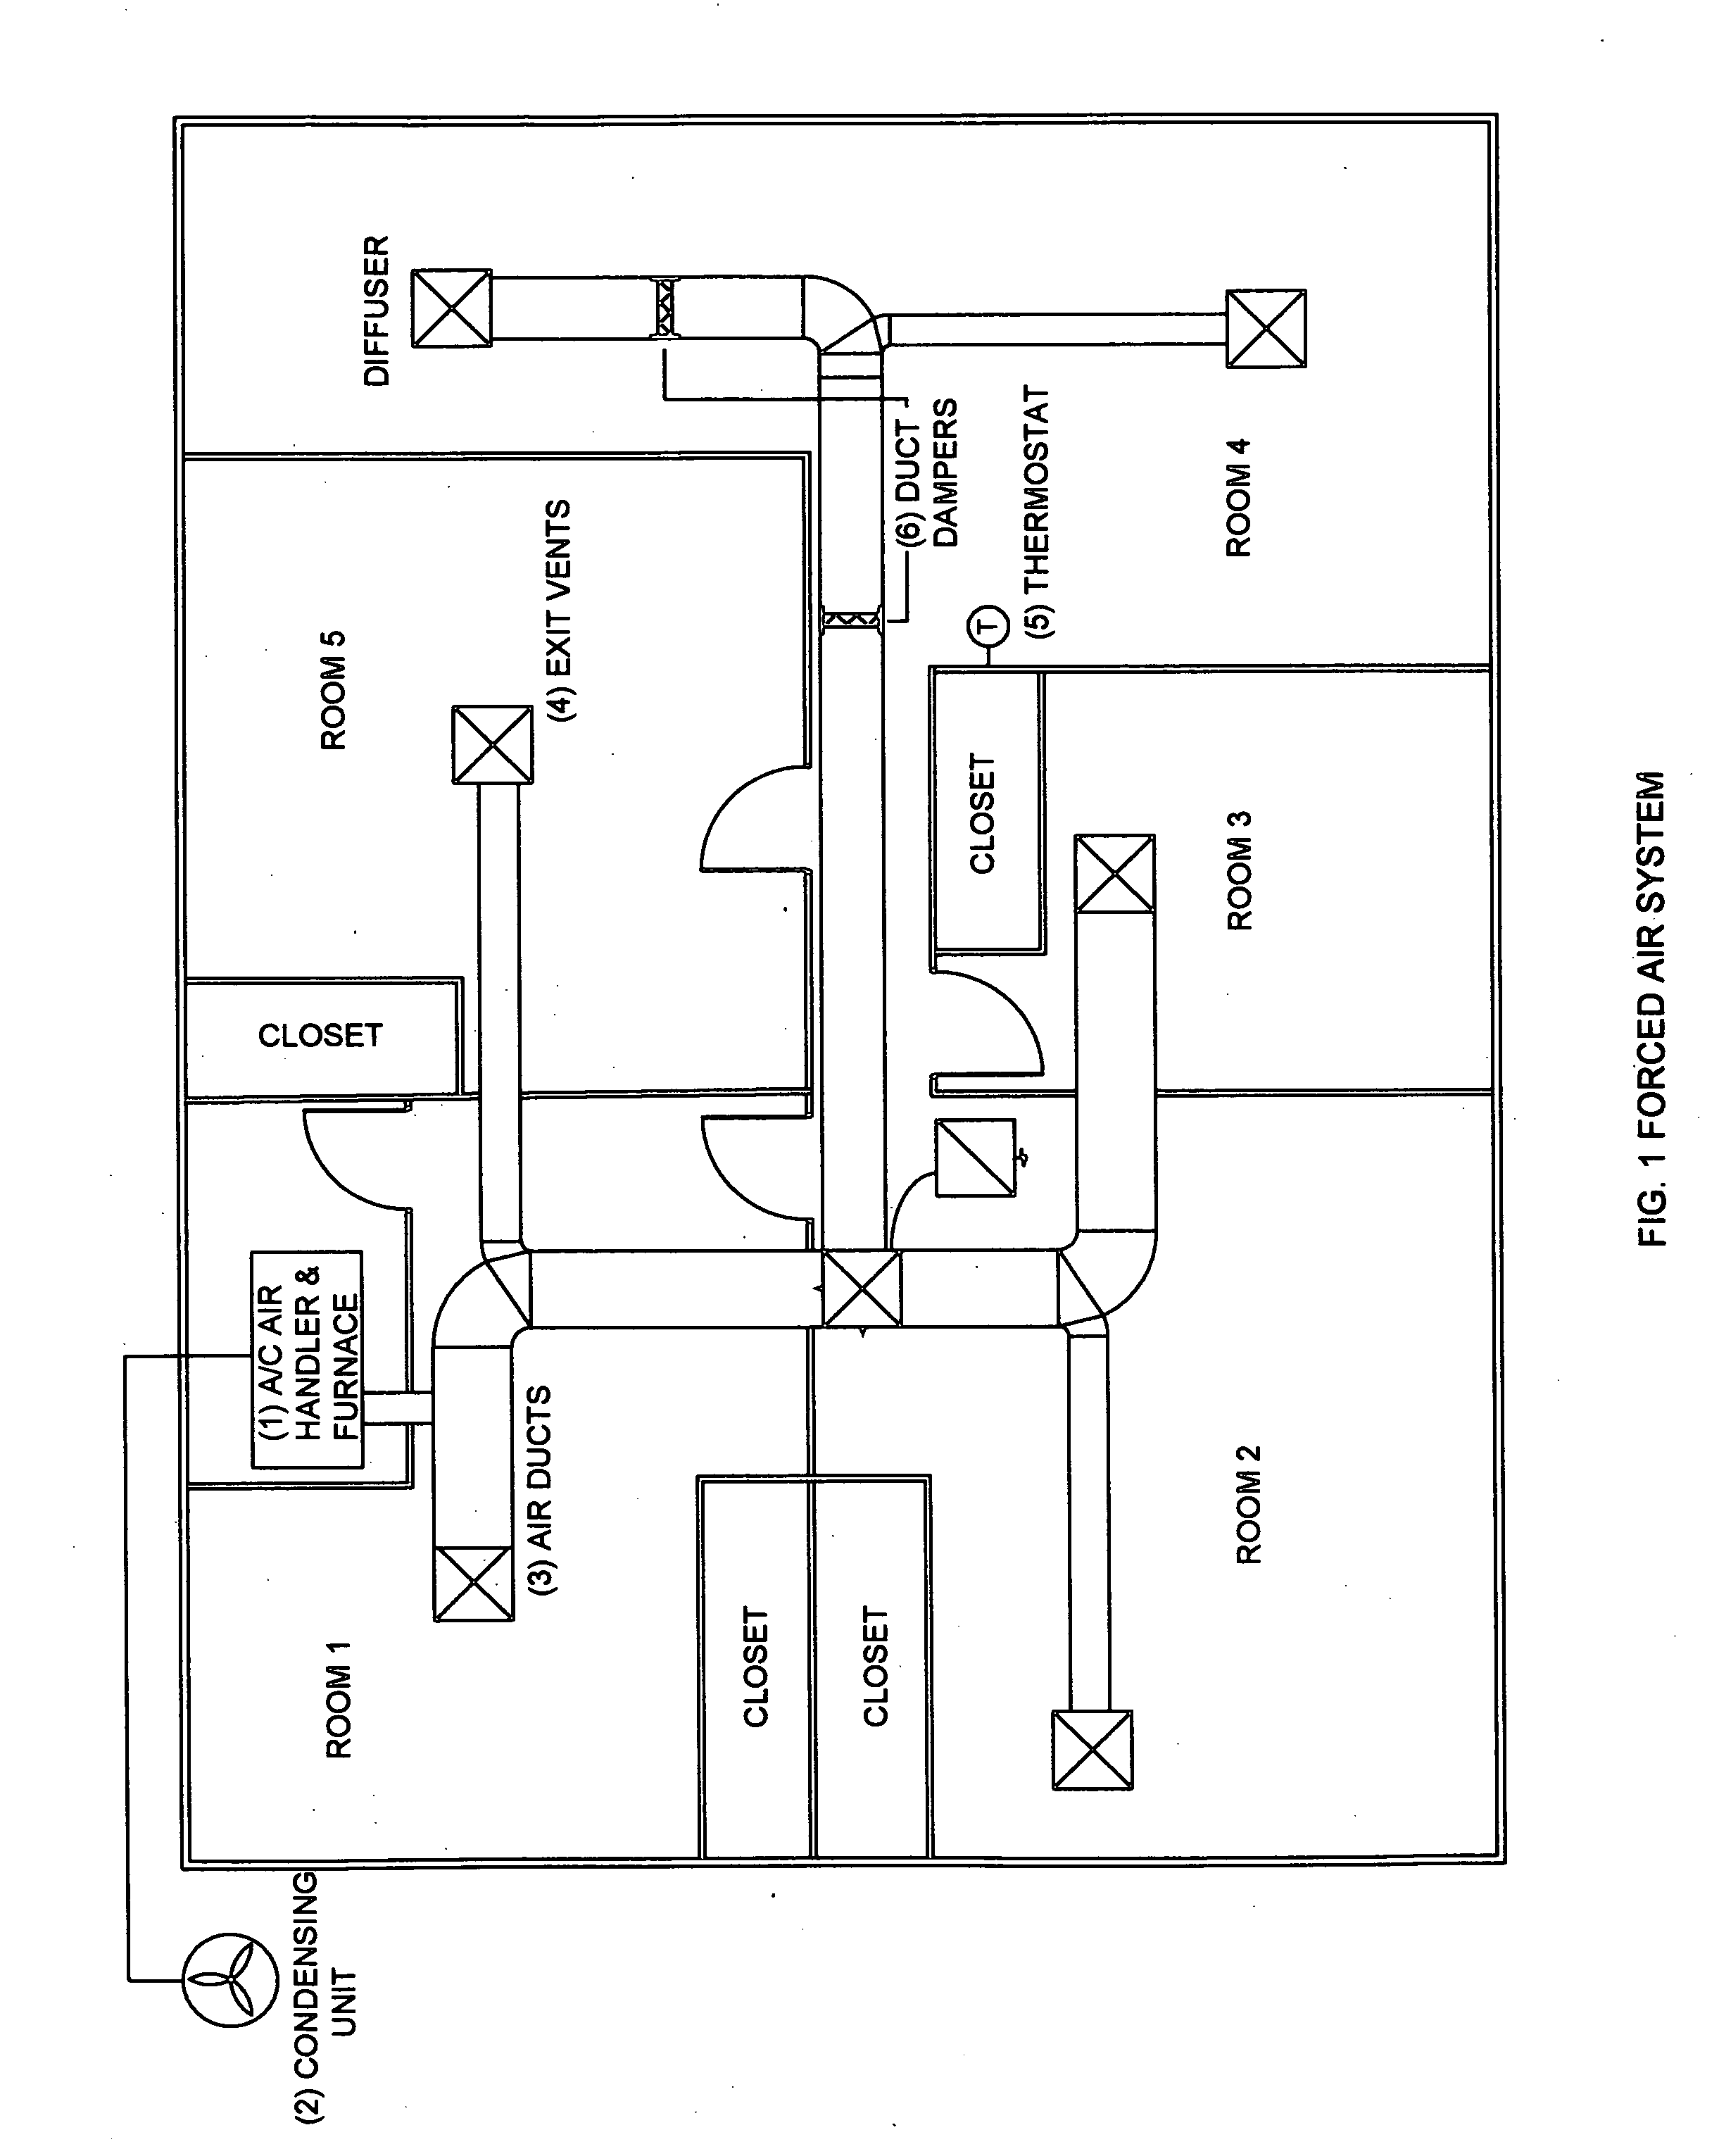 Ford Mercury Fuse Box moreover T1746029 Change serpentine belt 2003 ford likewise Xk8 Serpentine Belt Replacement 83551 as well 2004 likewise Land Rover Discovery Electrical Problems. on jaguar x type serpentine belt diagram